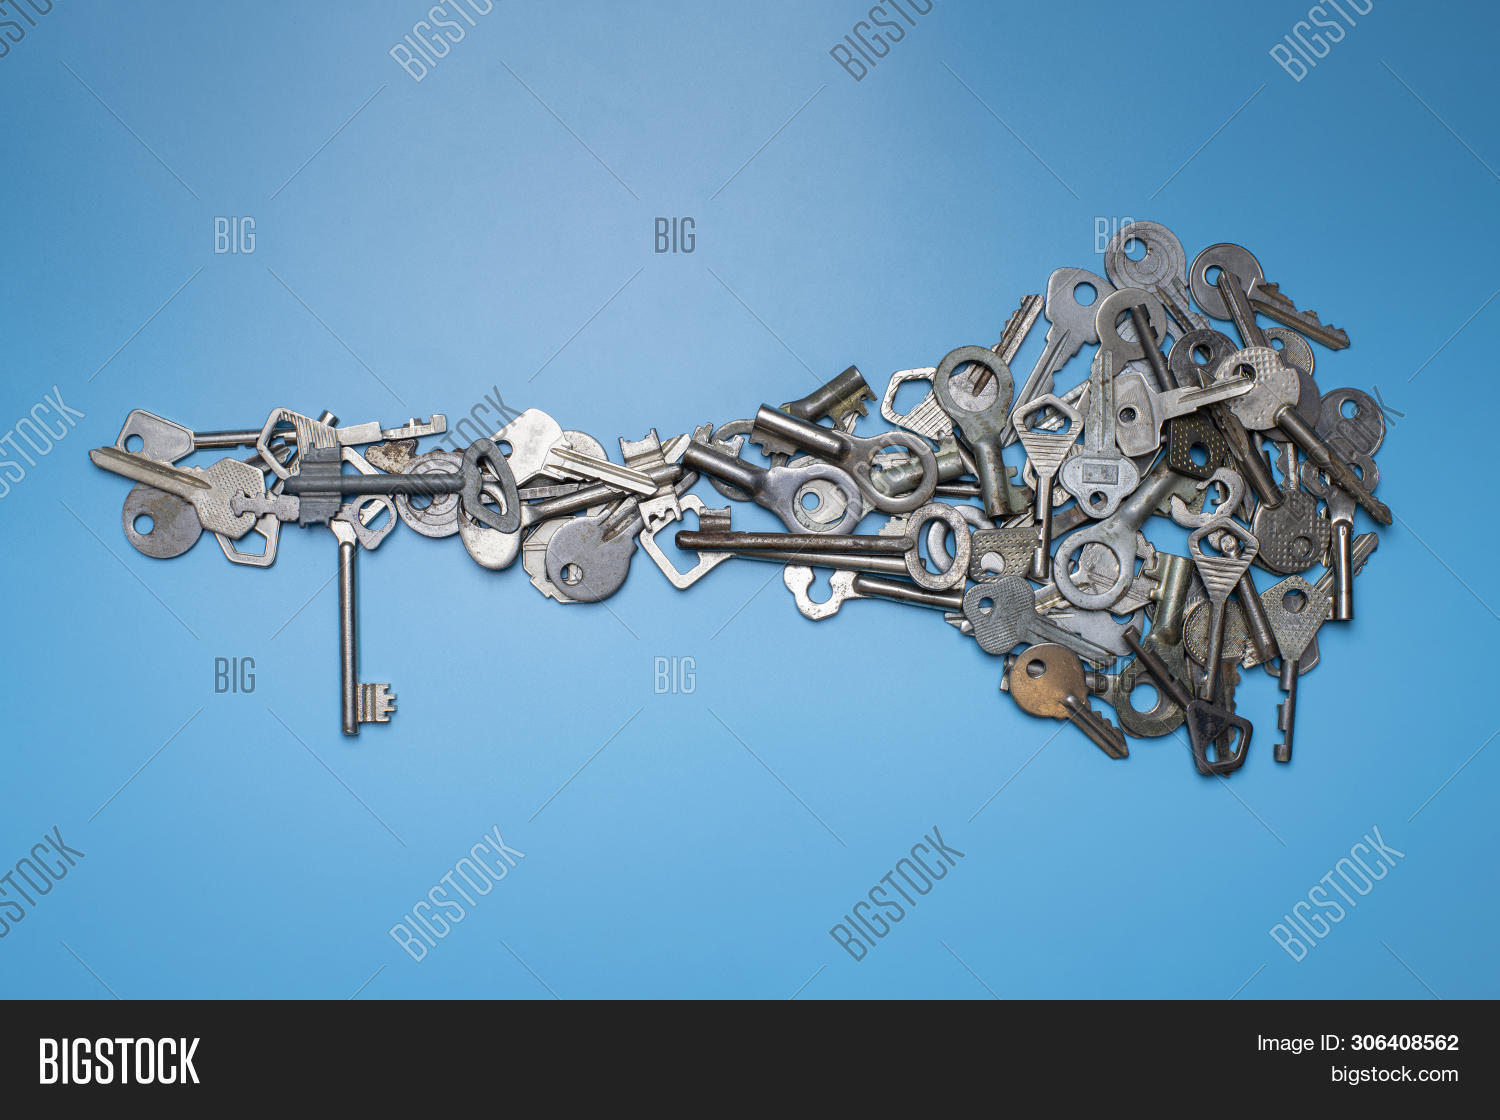 ancient,antique,apartment,background,big,blue,broker,bunch,business,buyer,chain,concept,credit,different,door,duplicate,hole,home,house,industrial,key,keyhole,keyring,lock,locksmith,many,metal,modern,multiple,new,object,old,owner,ownership,padlock,picking,privacy,private,property,real,rental,rusty,safe,sale,security,set,shape,silver,steel,unlock